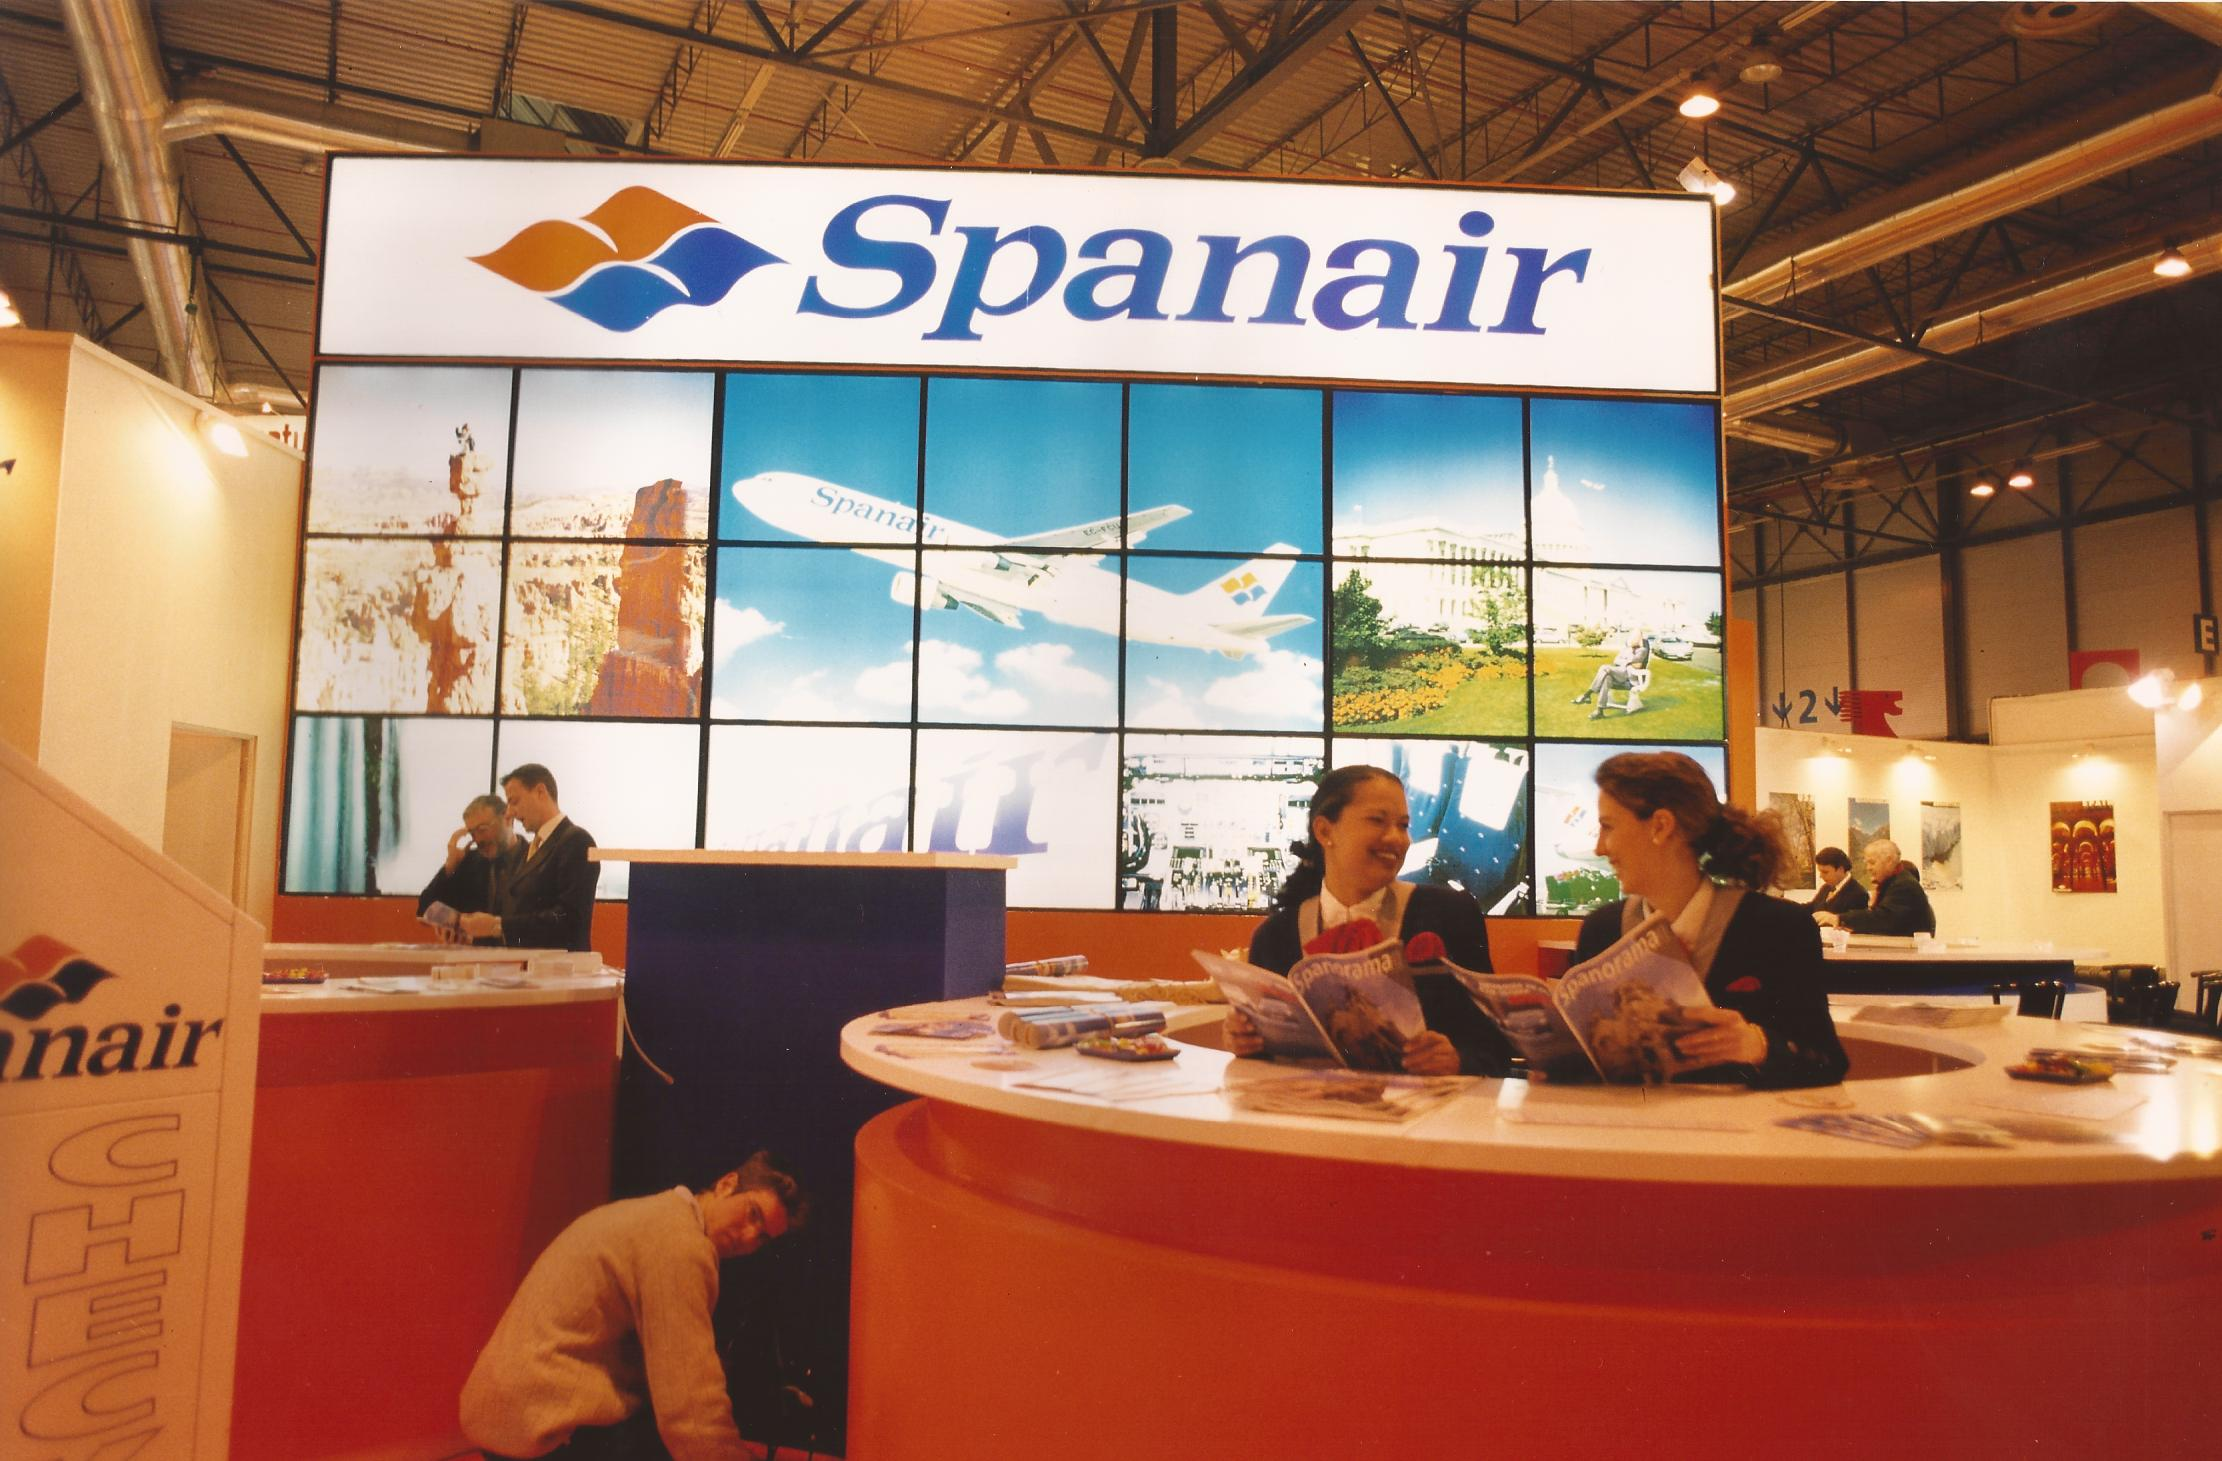 Stand for Spanair at FITUR